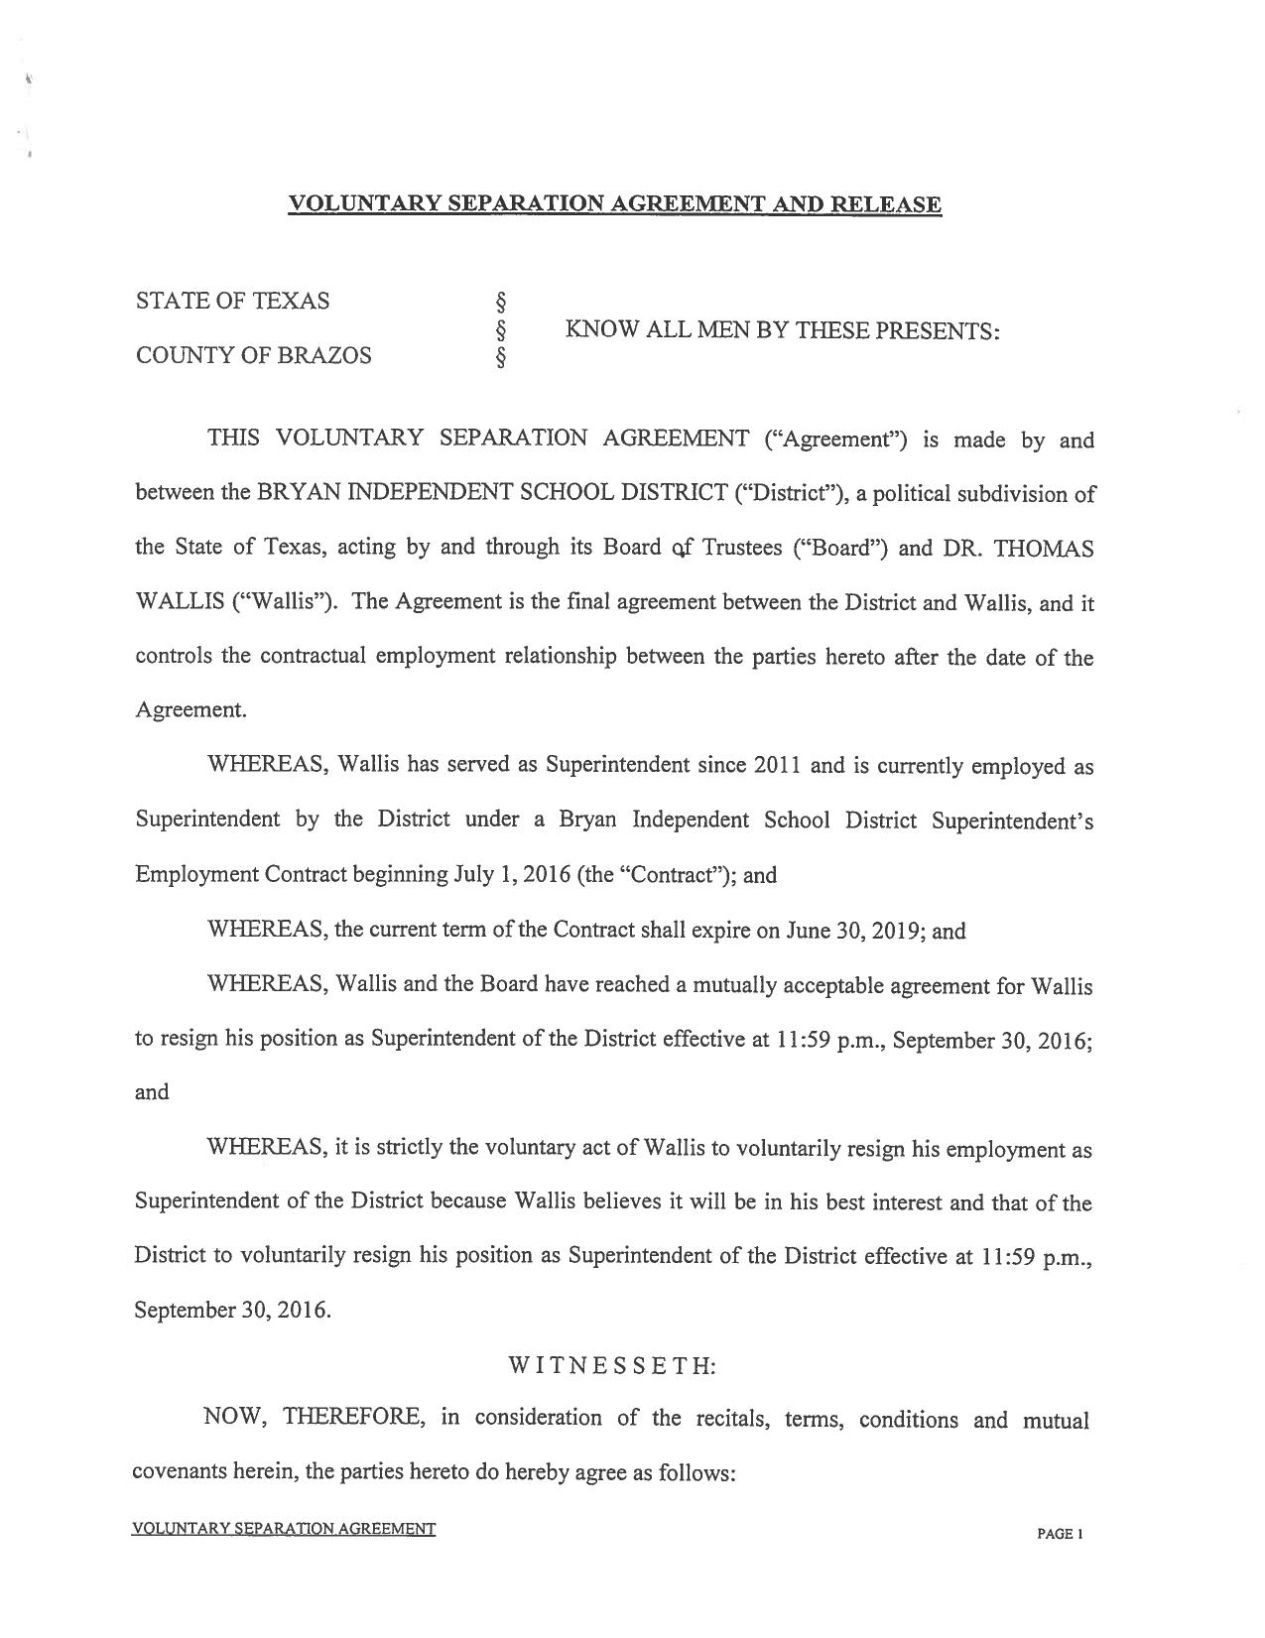 Download PDF Bryan ISD Voluntary Separation Agreement With Tommy Wallis